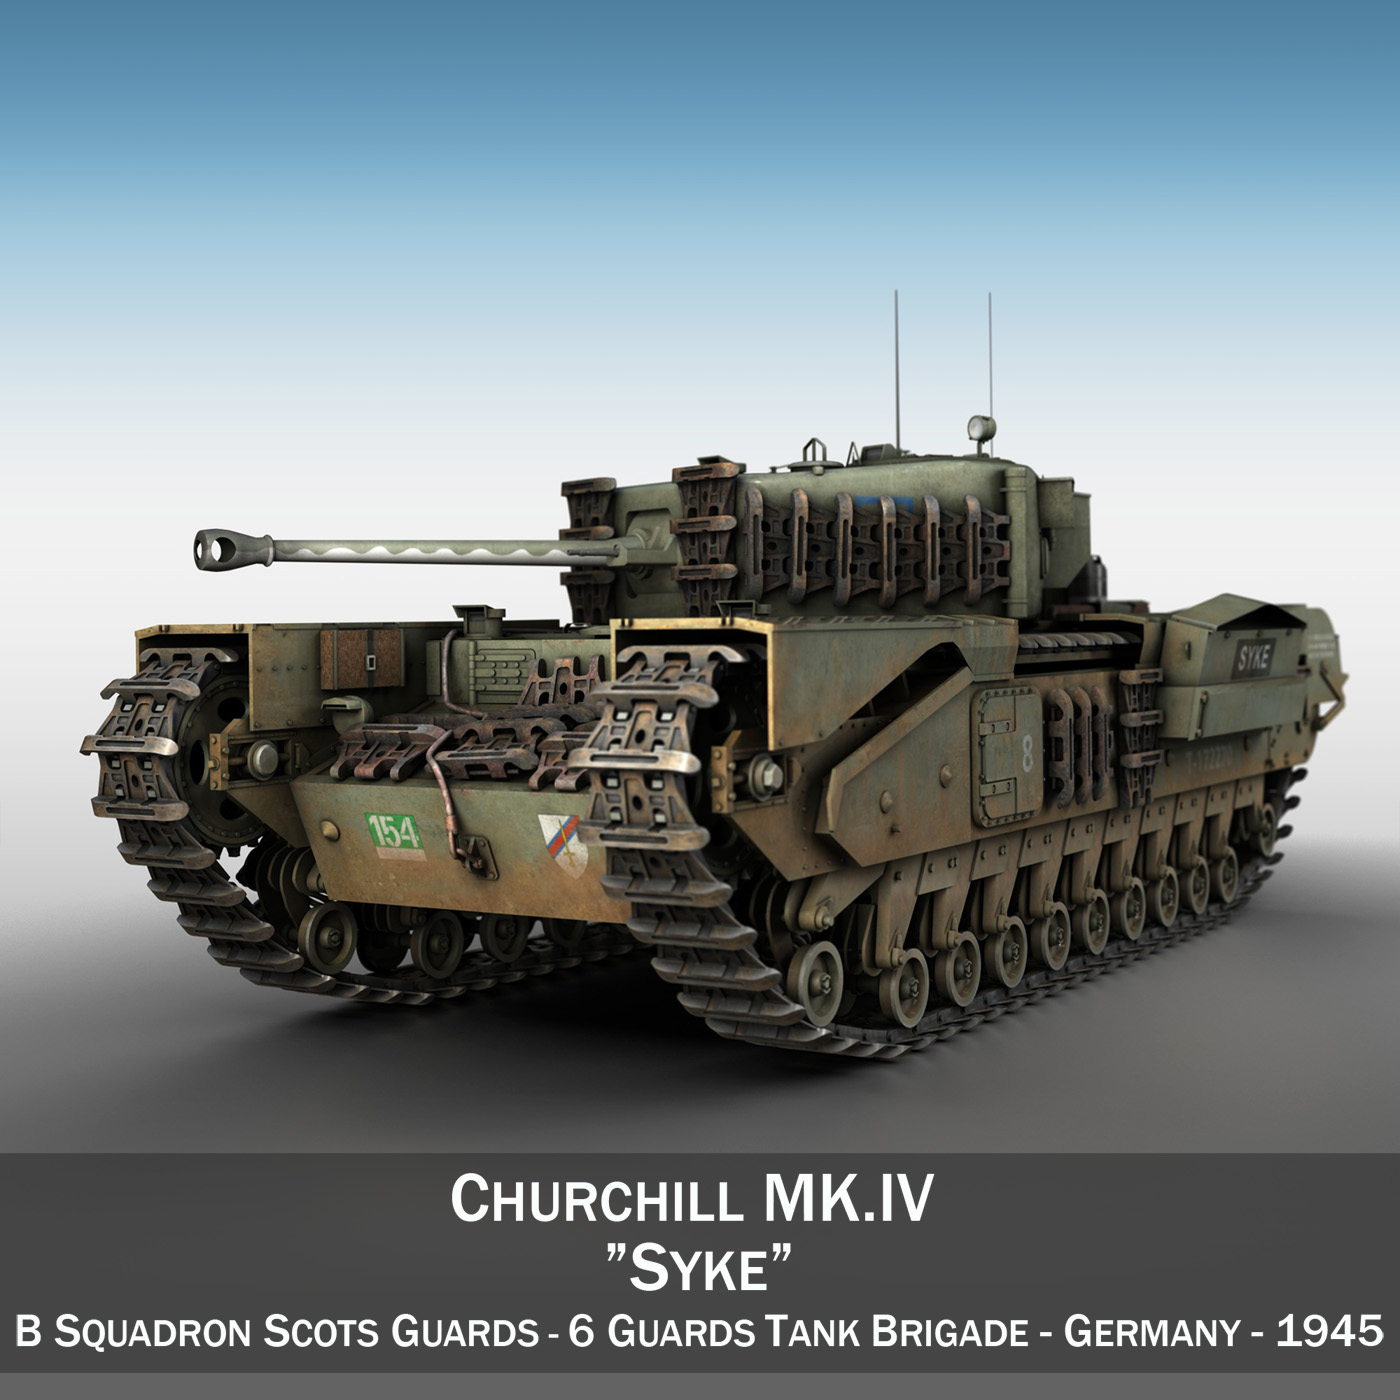 churchill mk iv - syke 3d model 3ds fbx c4ddua obj 272993